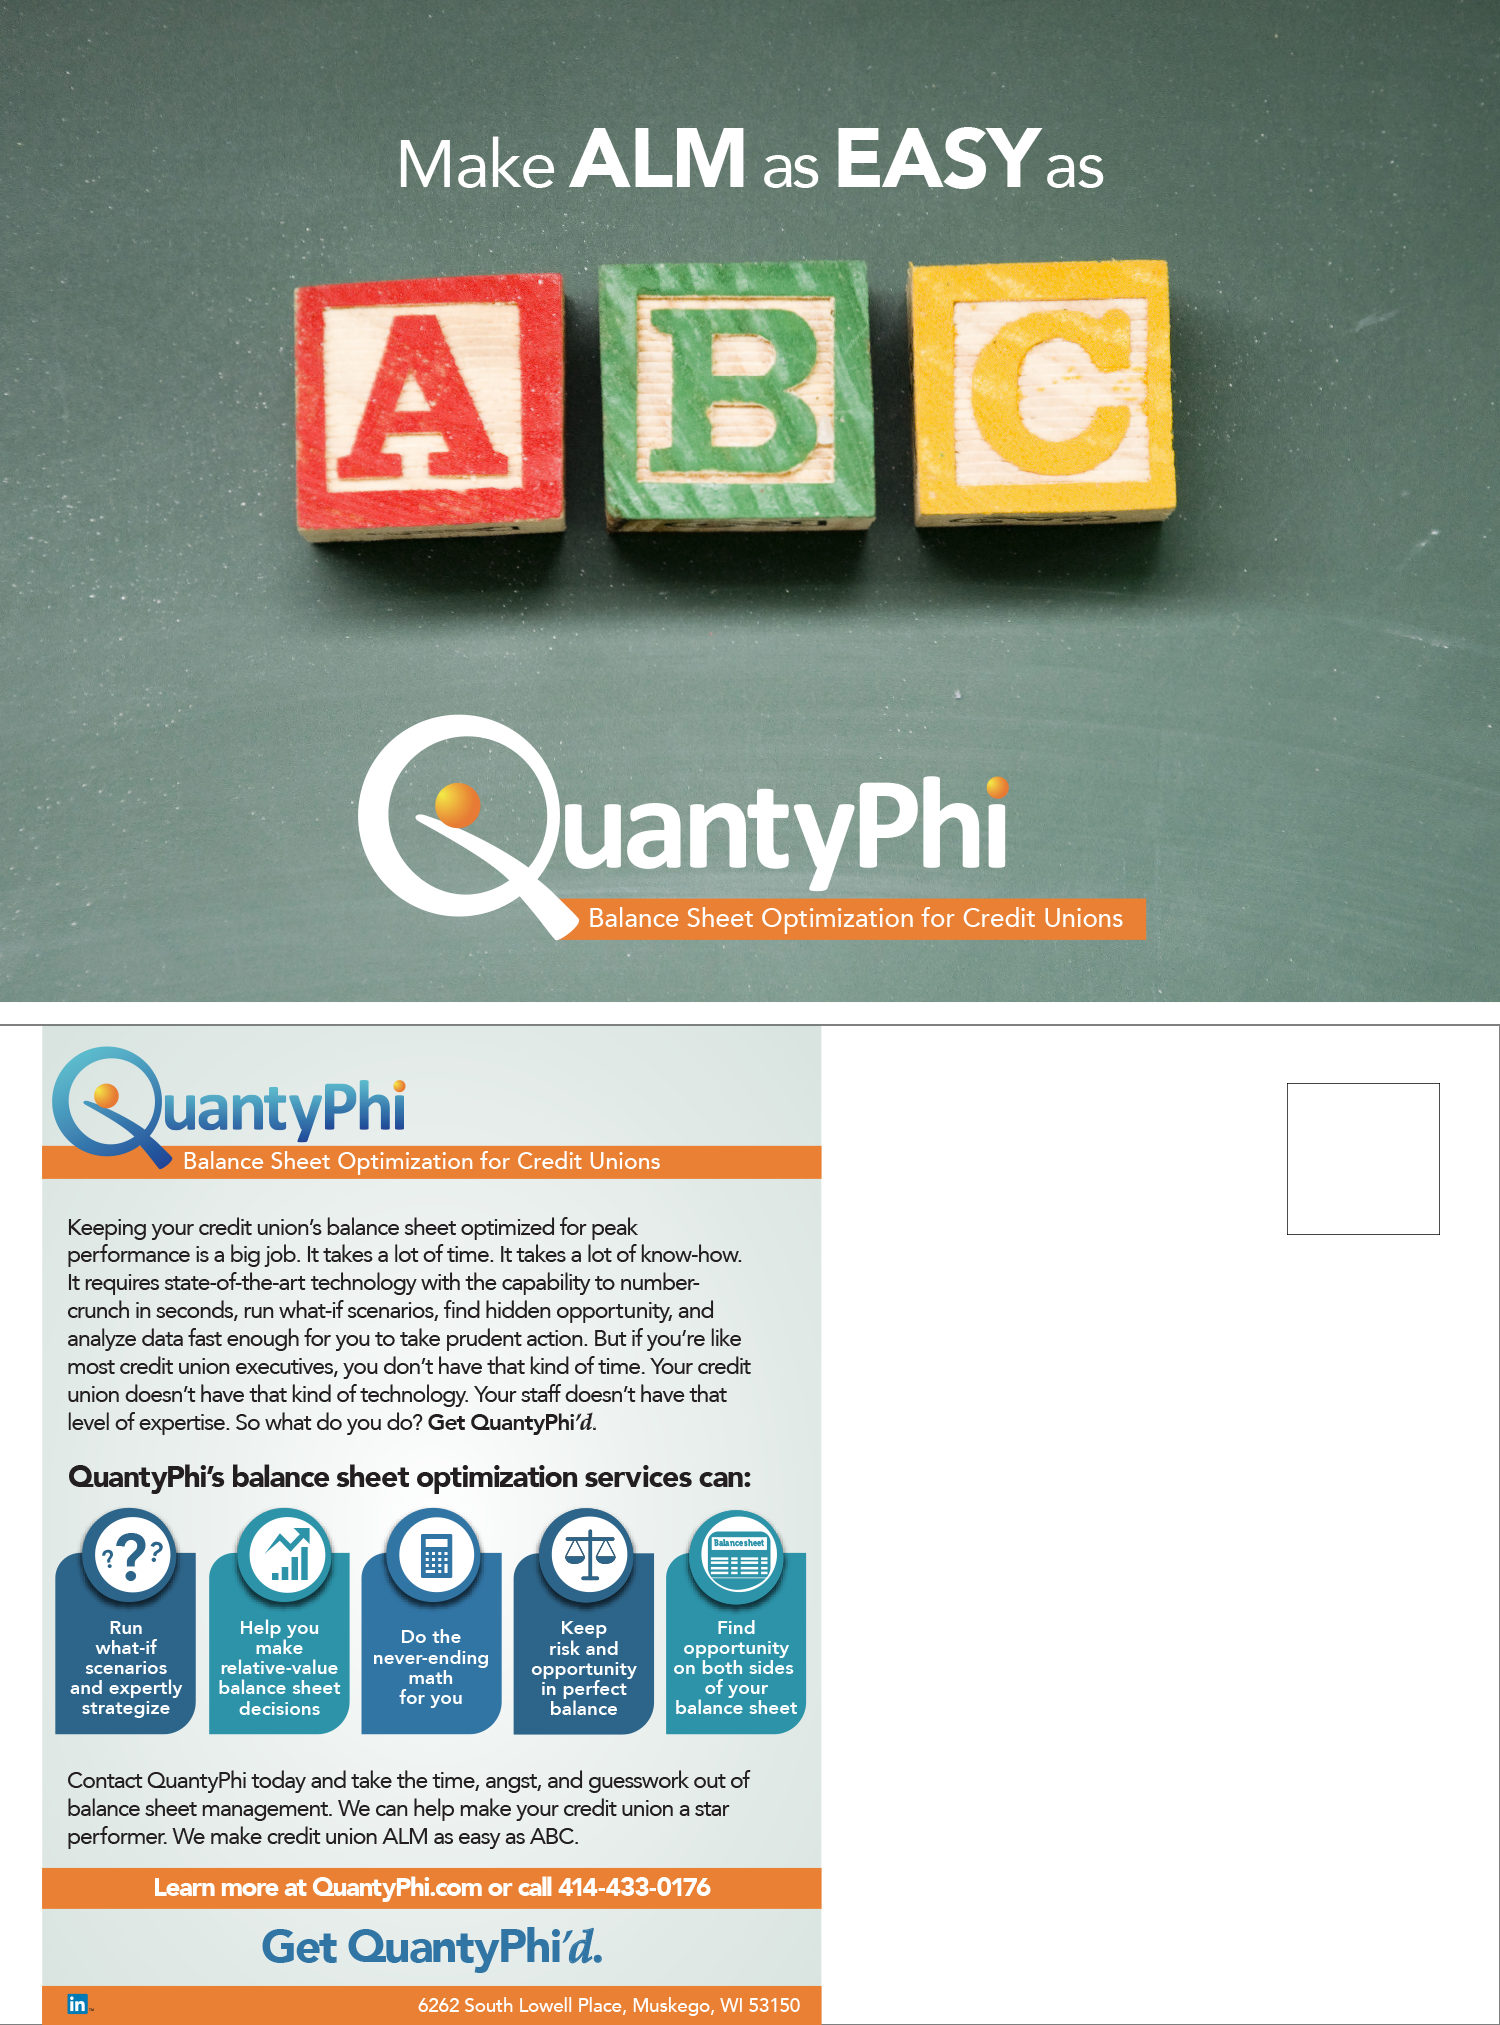 QuantyPhi_Postcards_Simple_ABC_052317.png